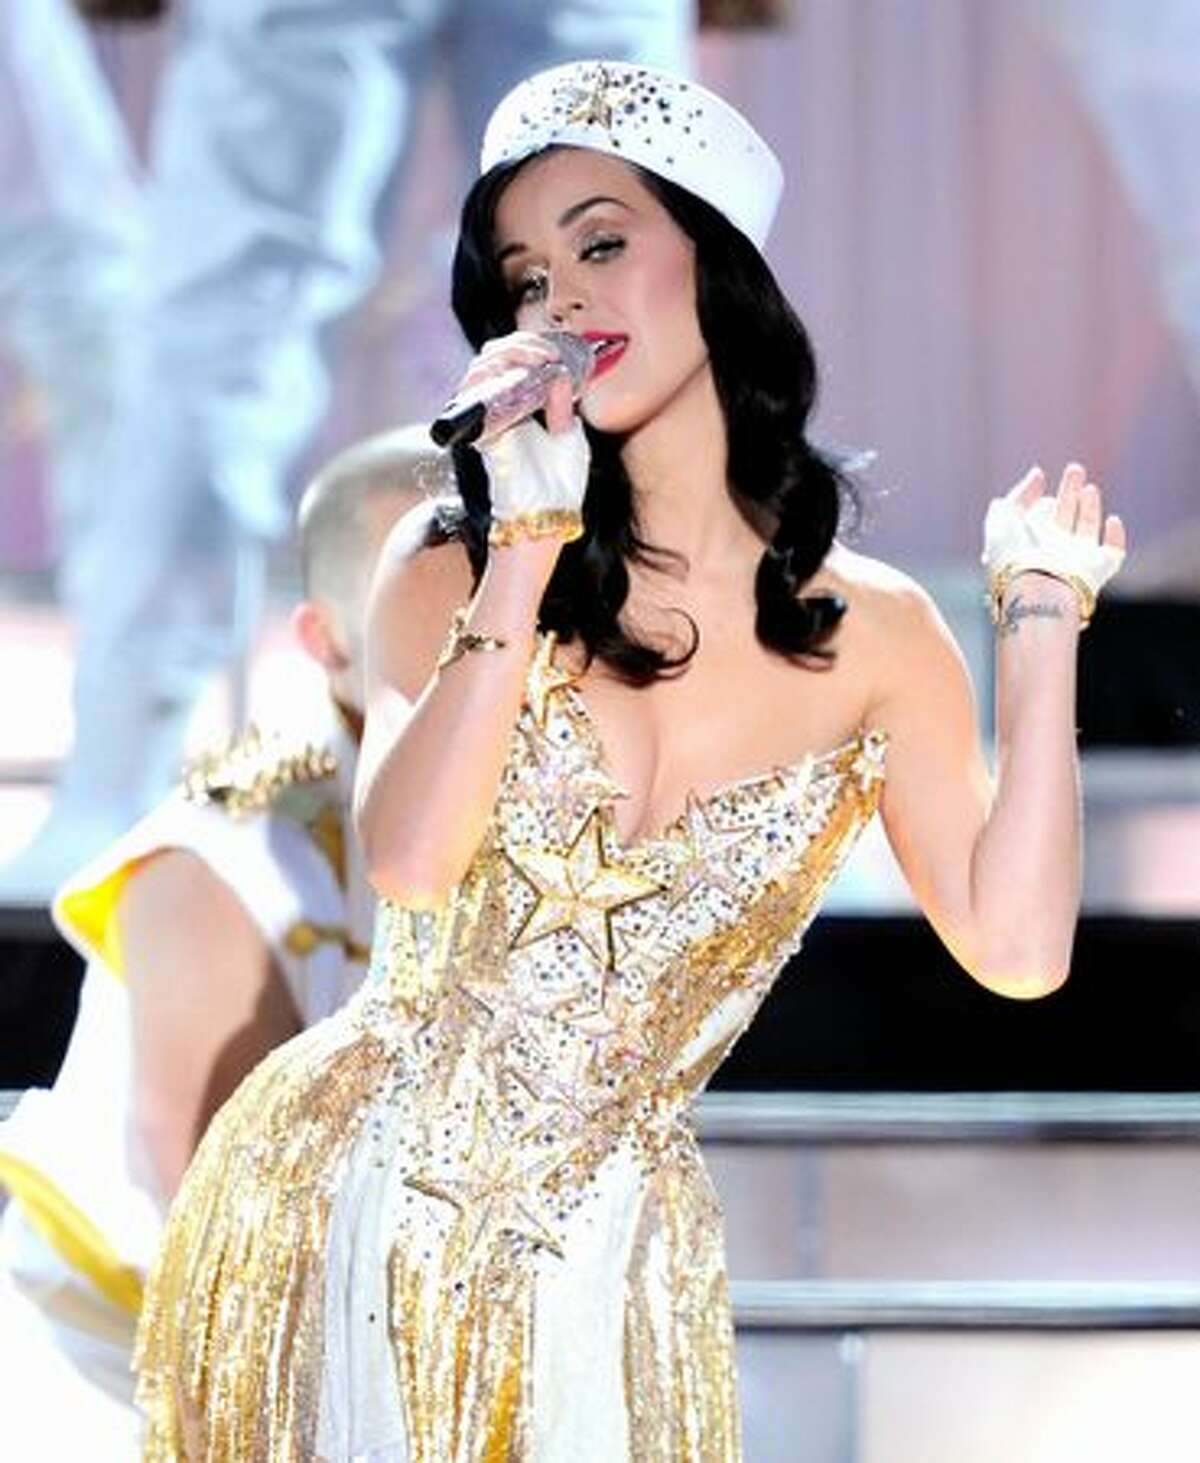 """Singer Katy Perry performs onstage during """"VH1 Divas Salute the Troops"""" presented by the USO at the MCAS Miramar in Miramar, Calif., on Friday, Dec. 3, 2010. """"VH1 Divas Salute the Troops"""" concert event will be televised on Sunday at 9:00 p.m. Pacific on VH1."""